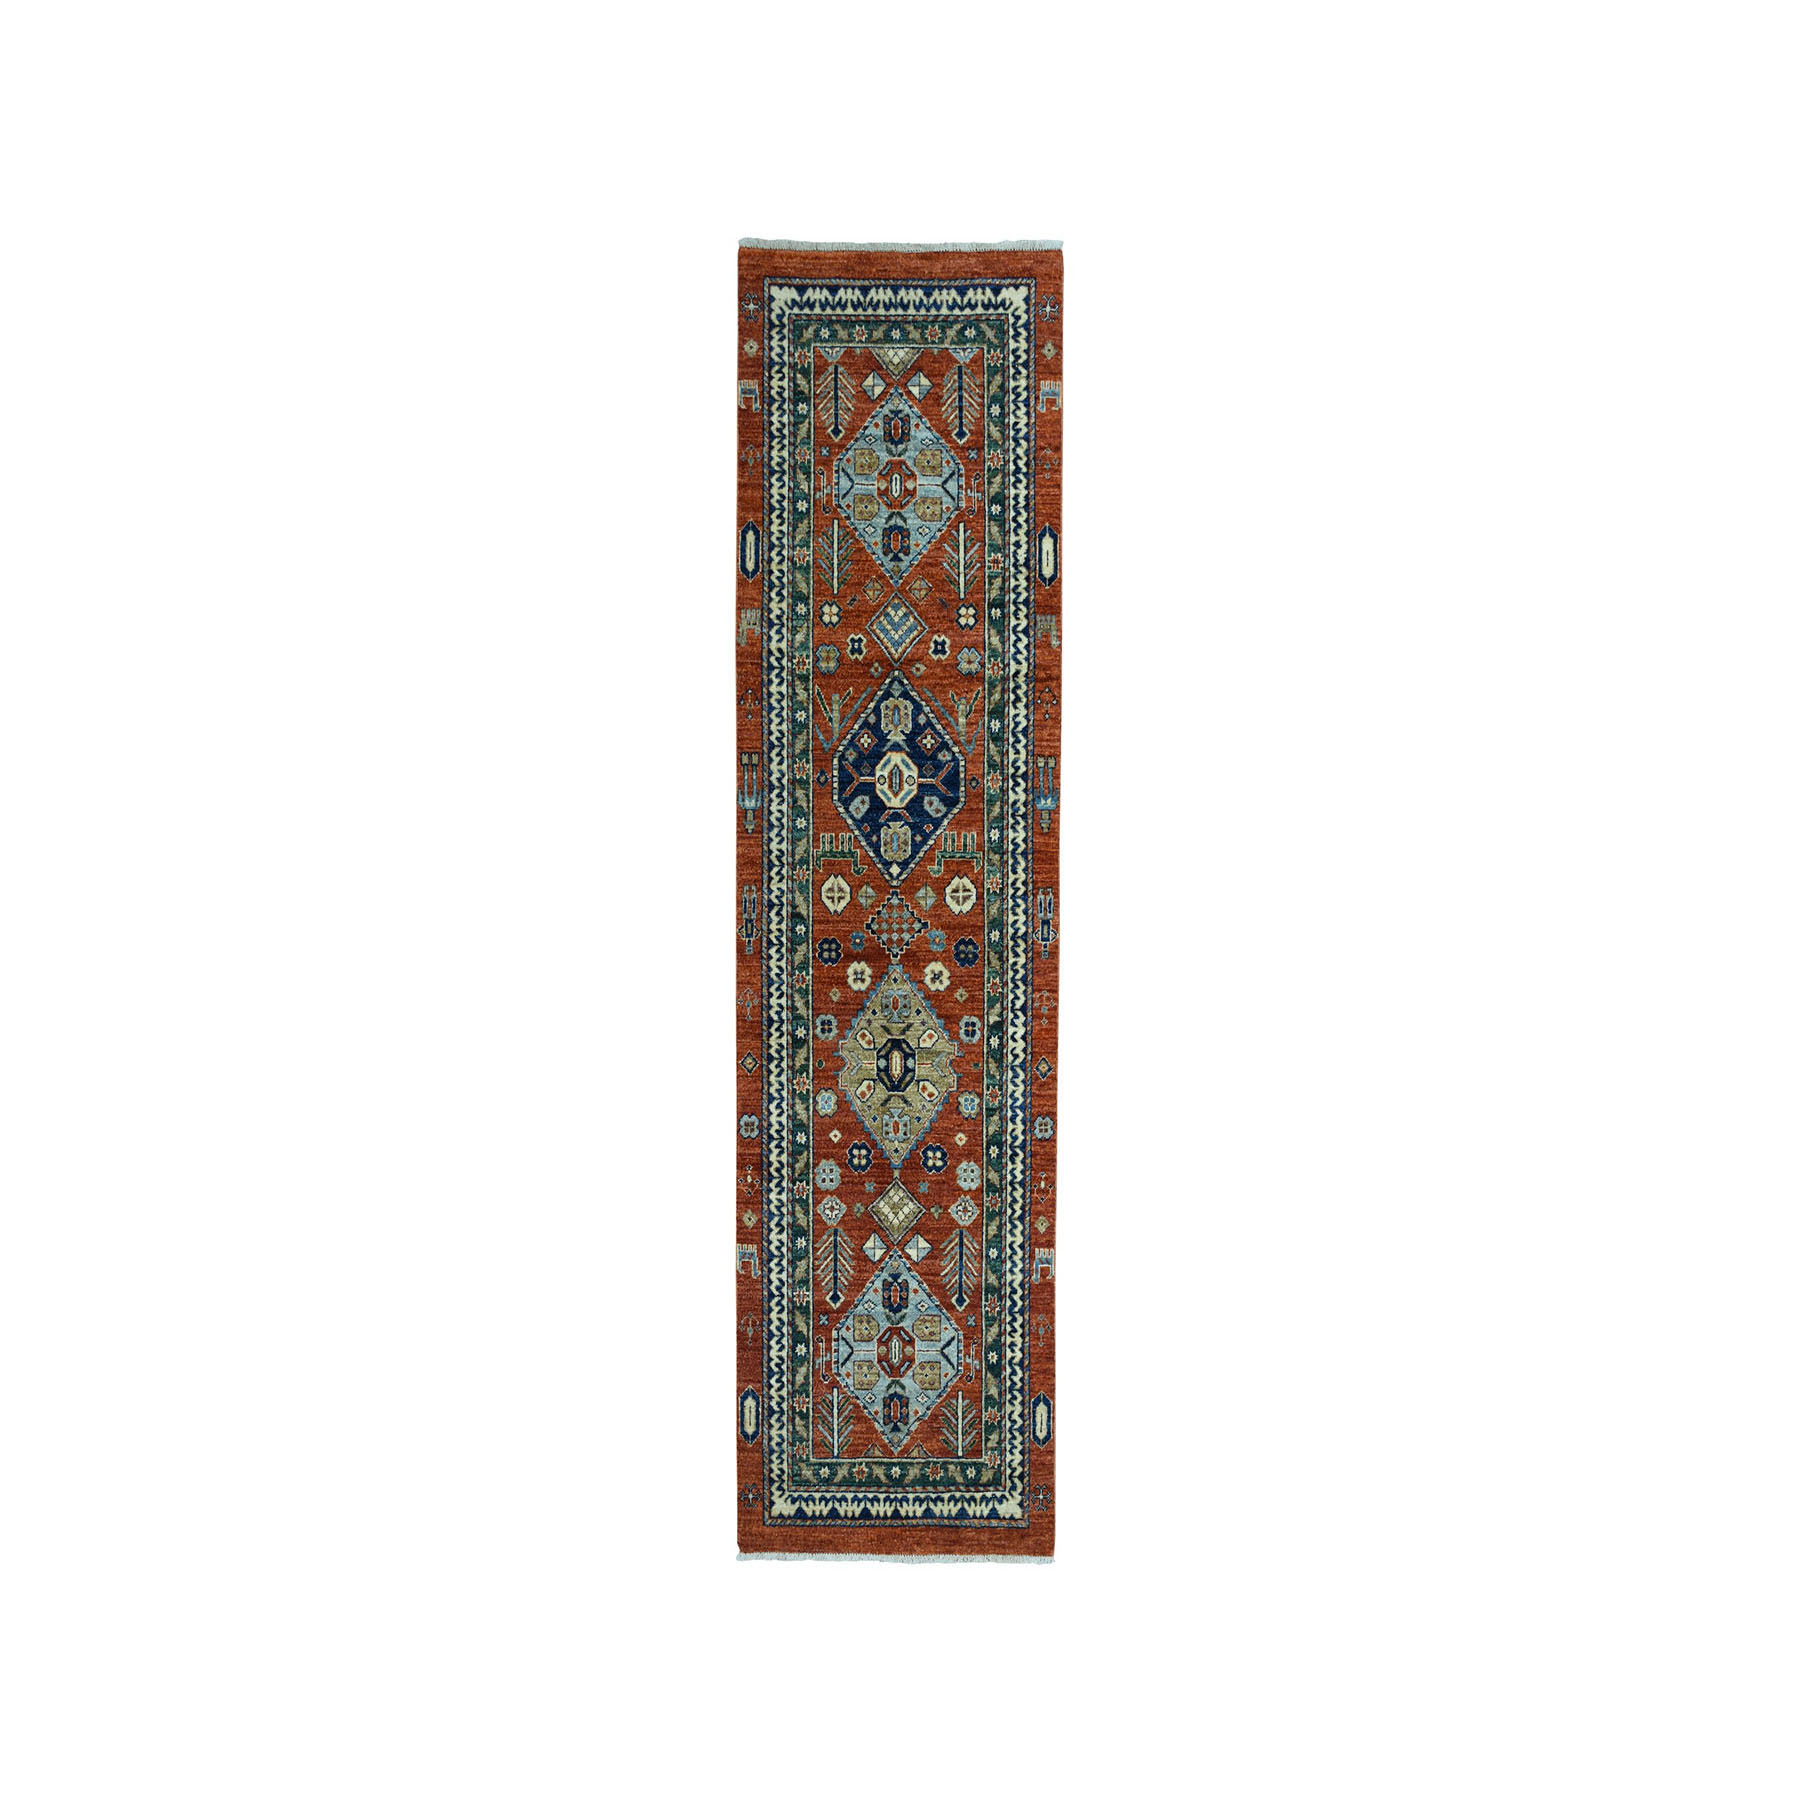 "2'7""x8' Orange Northwest Pictorial Pure Wool Peshawar Hand-Knotted Oriental Runner Rug"